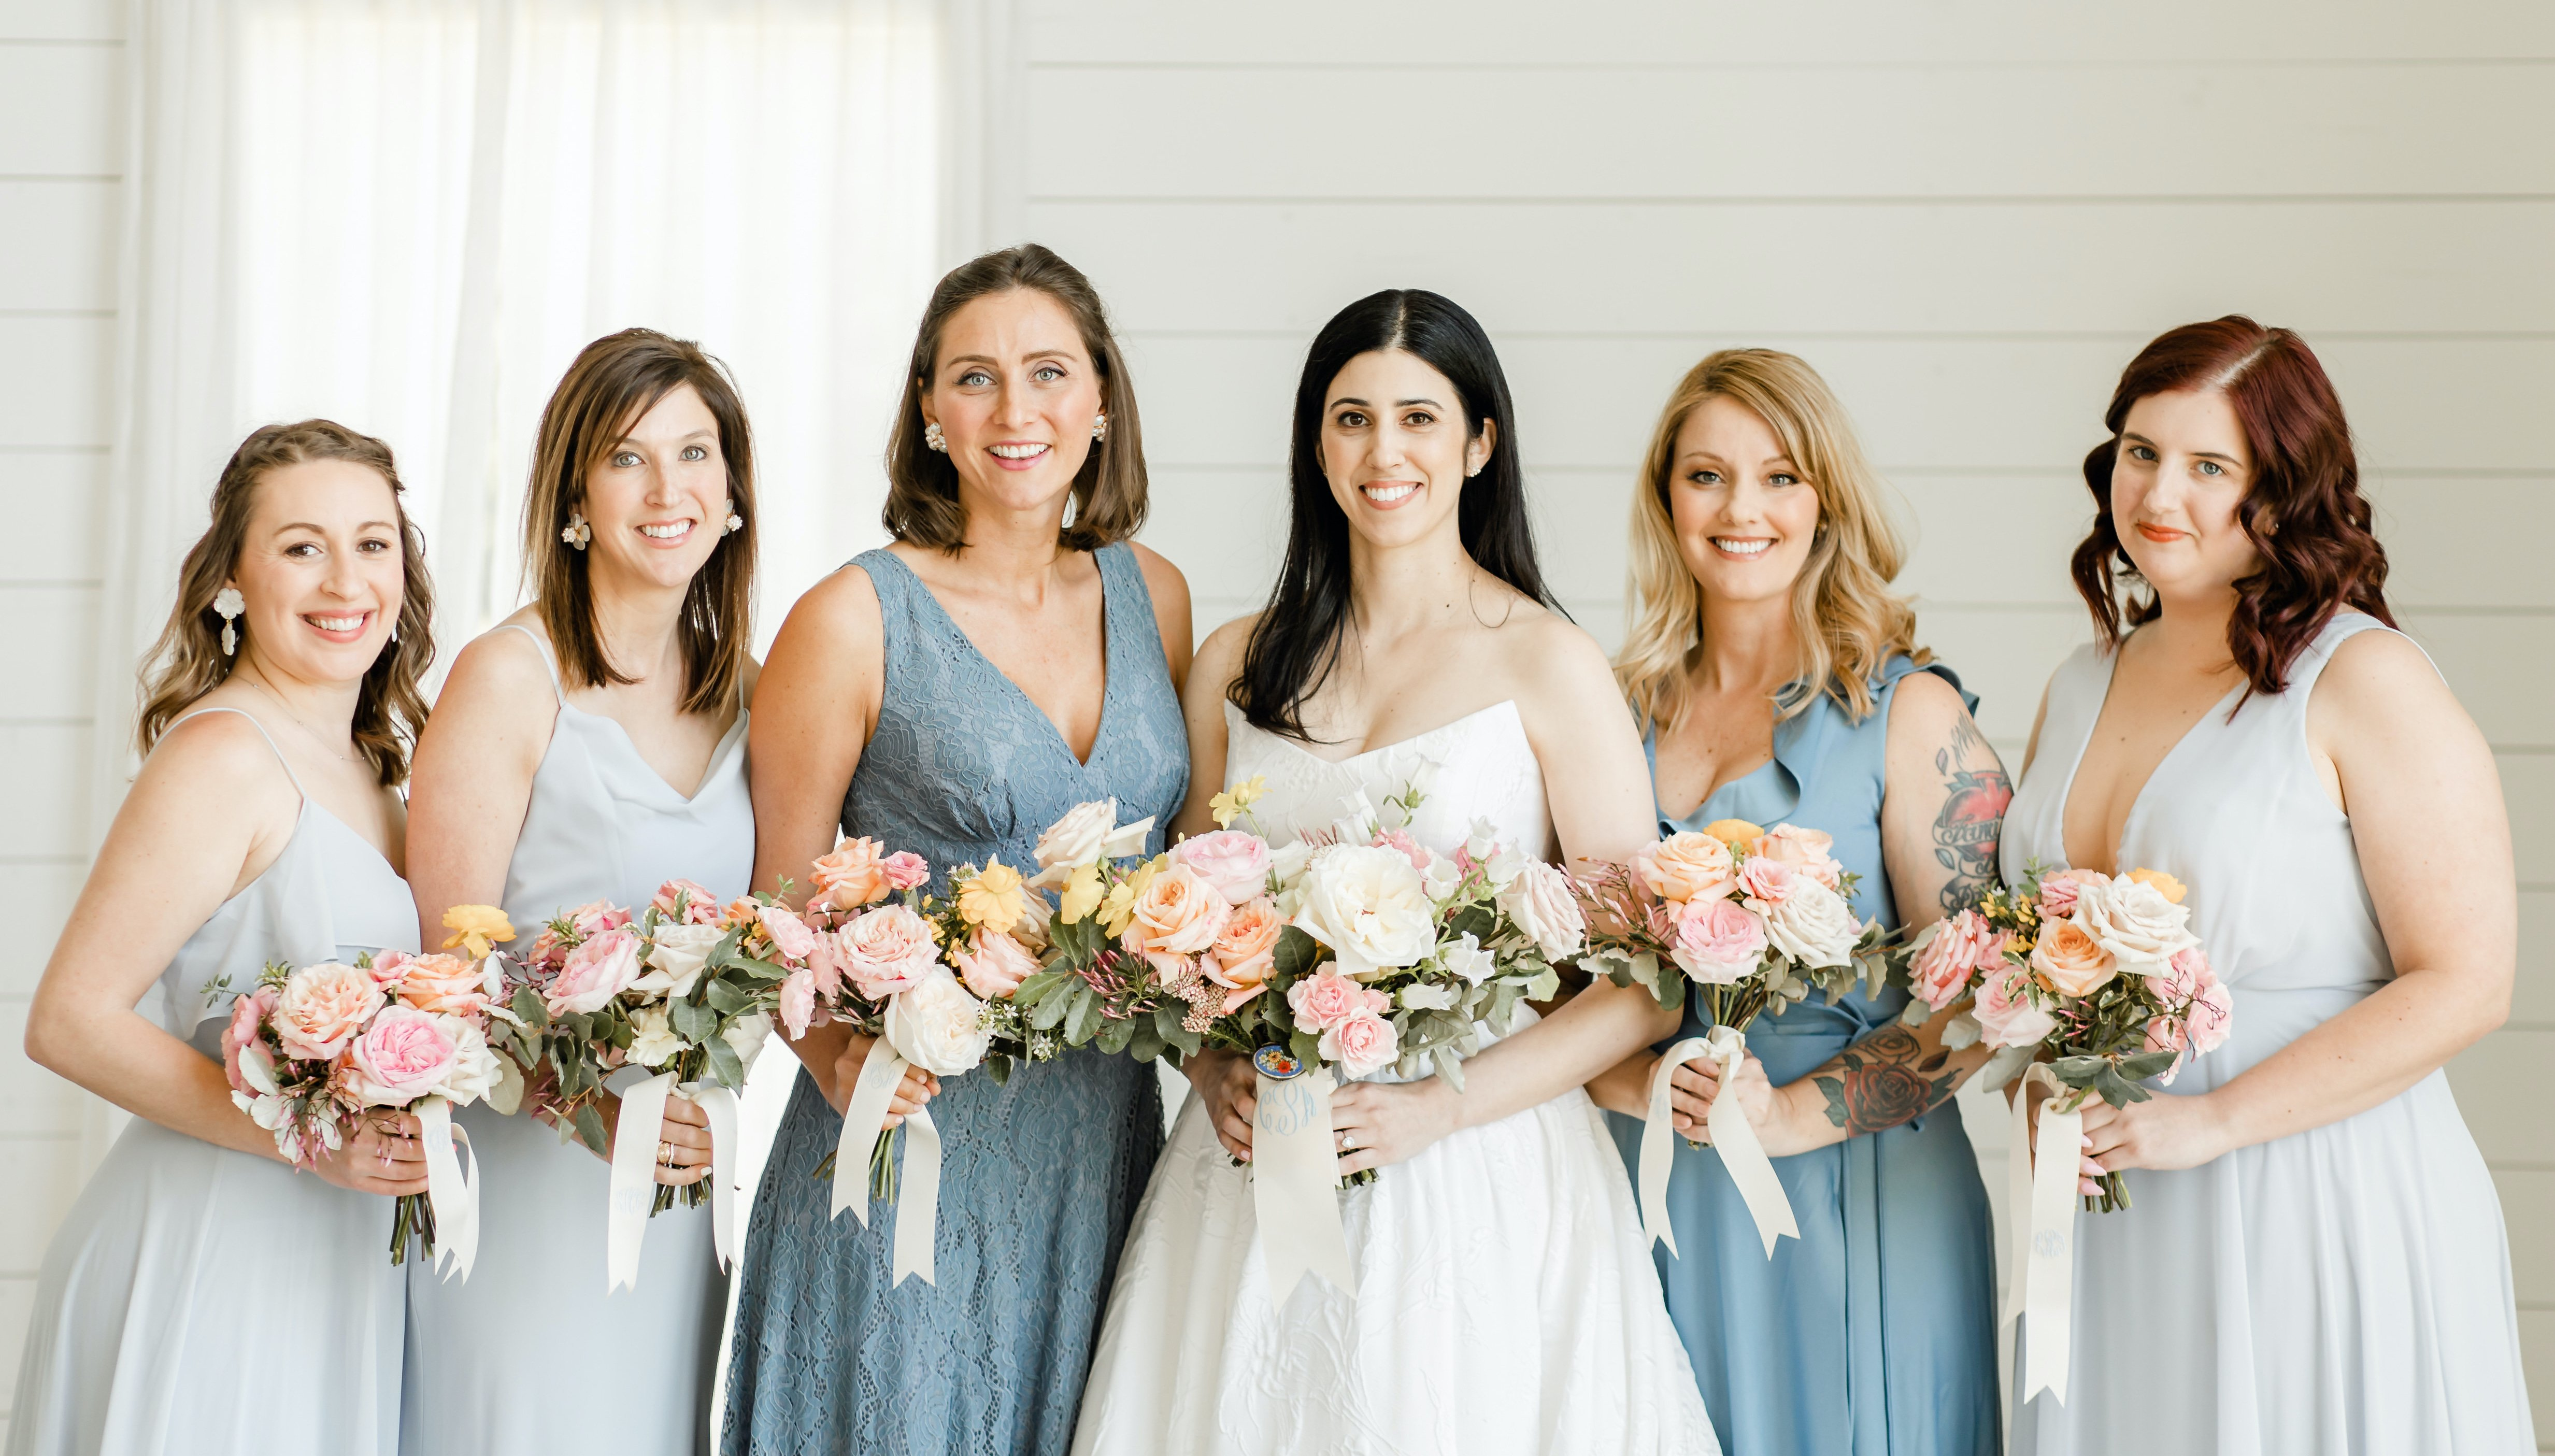 The bride smiles with her bridesmaids and they all hold their colorful bouquets.